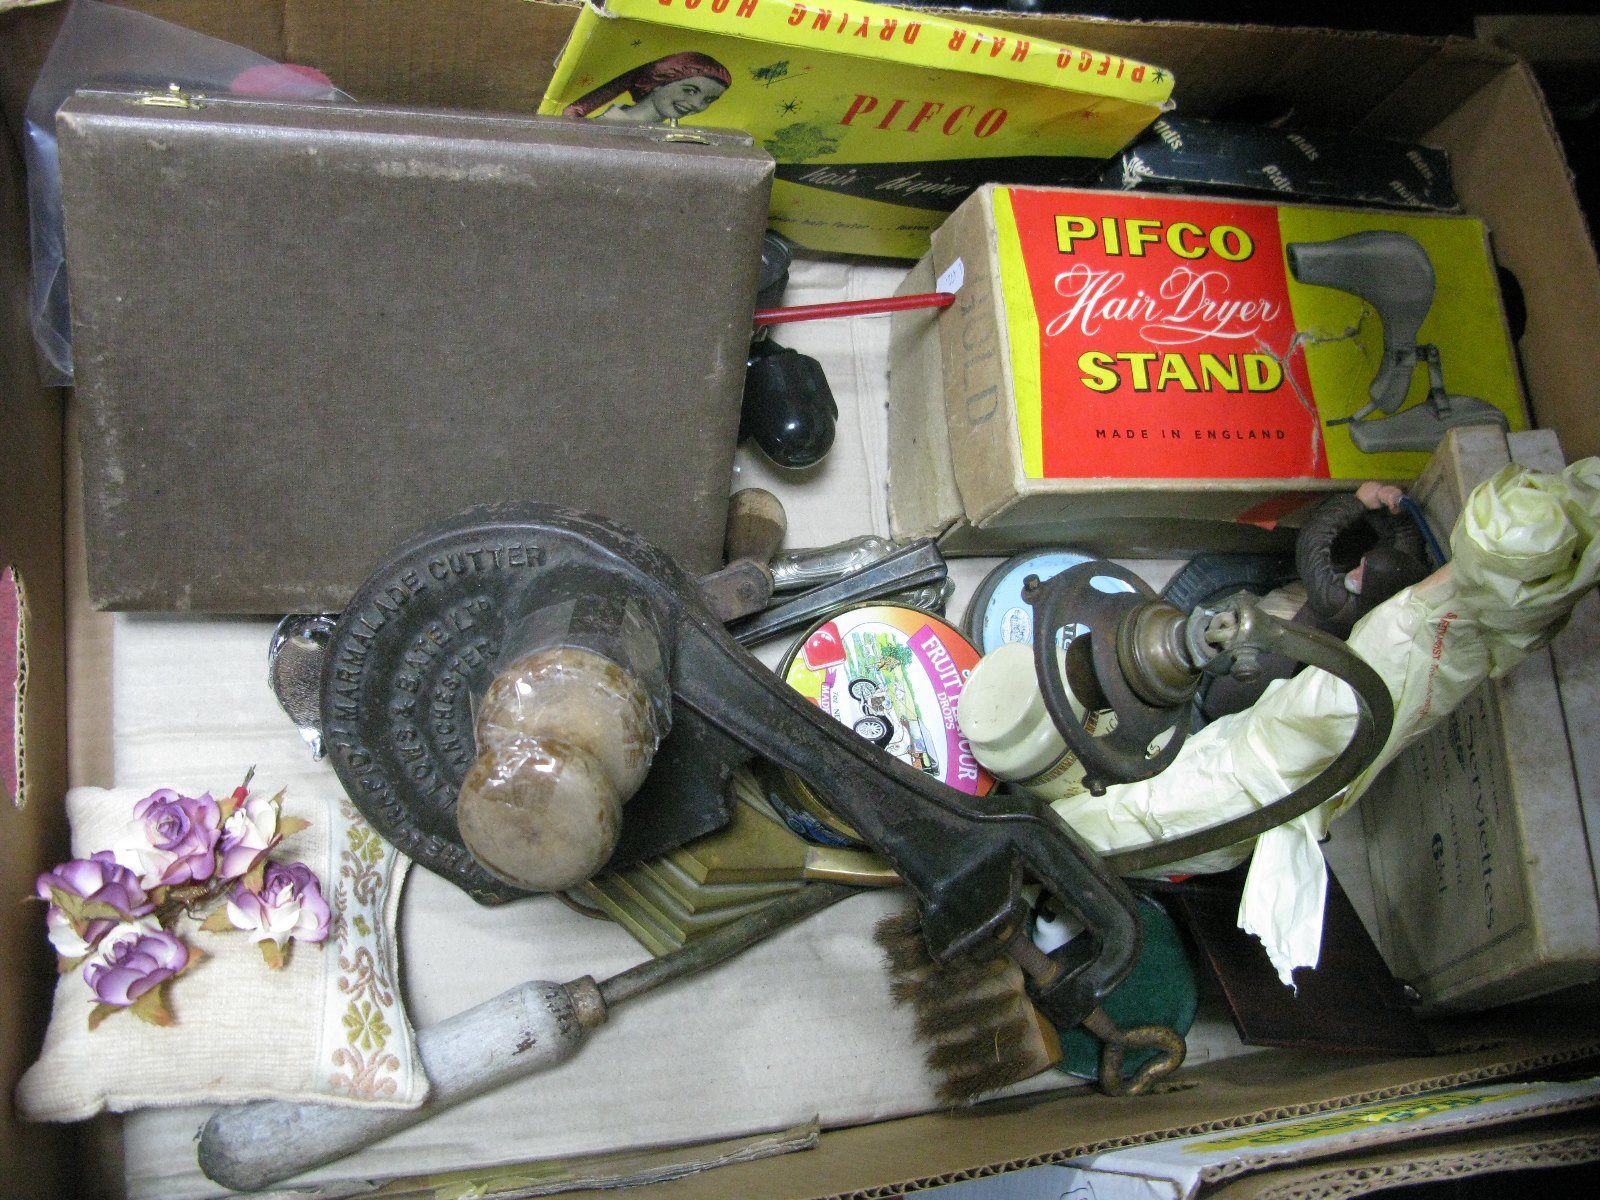 Lot 1019 - Ard Deco Hall Lamp, 'Rapid' marmalade cutter, Pifco stand, Japanese napkins etc:- One Box